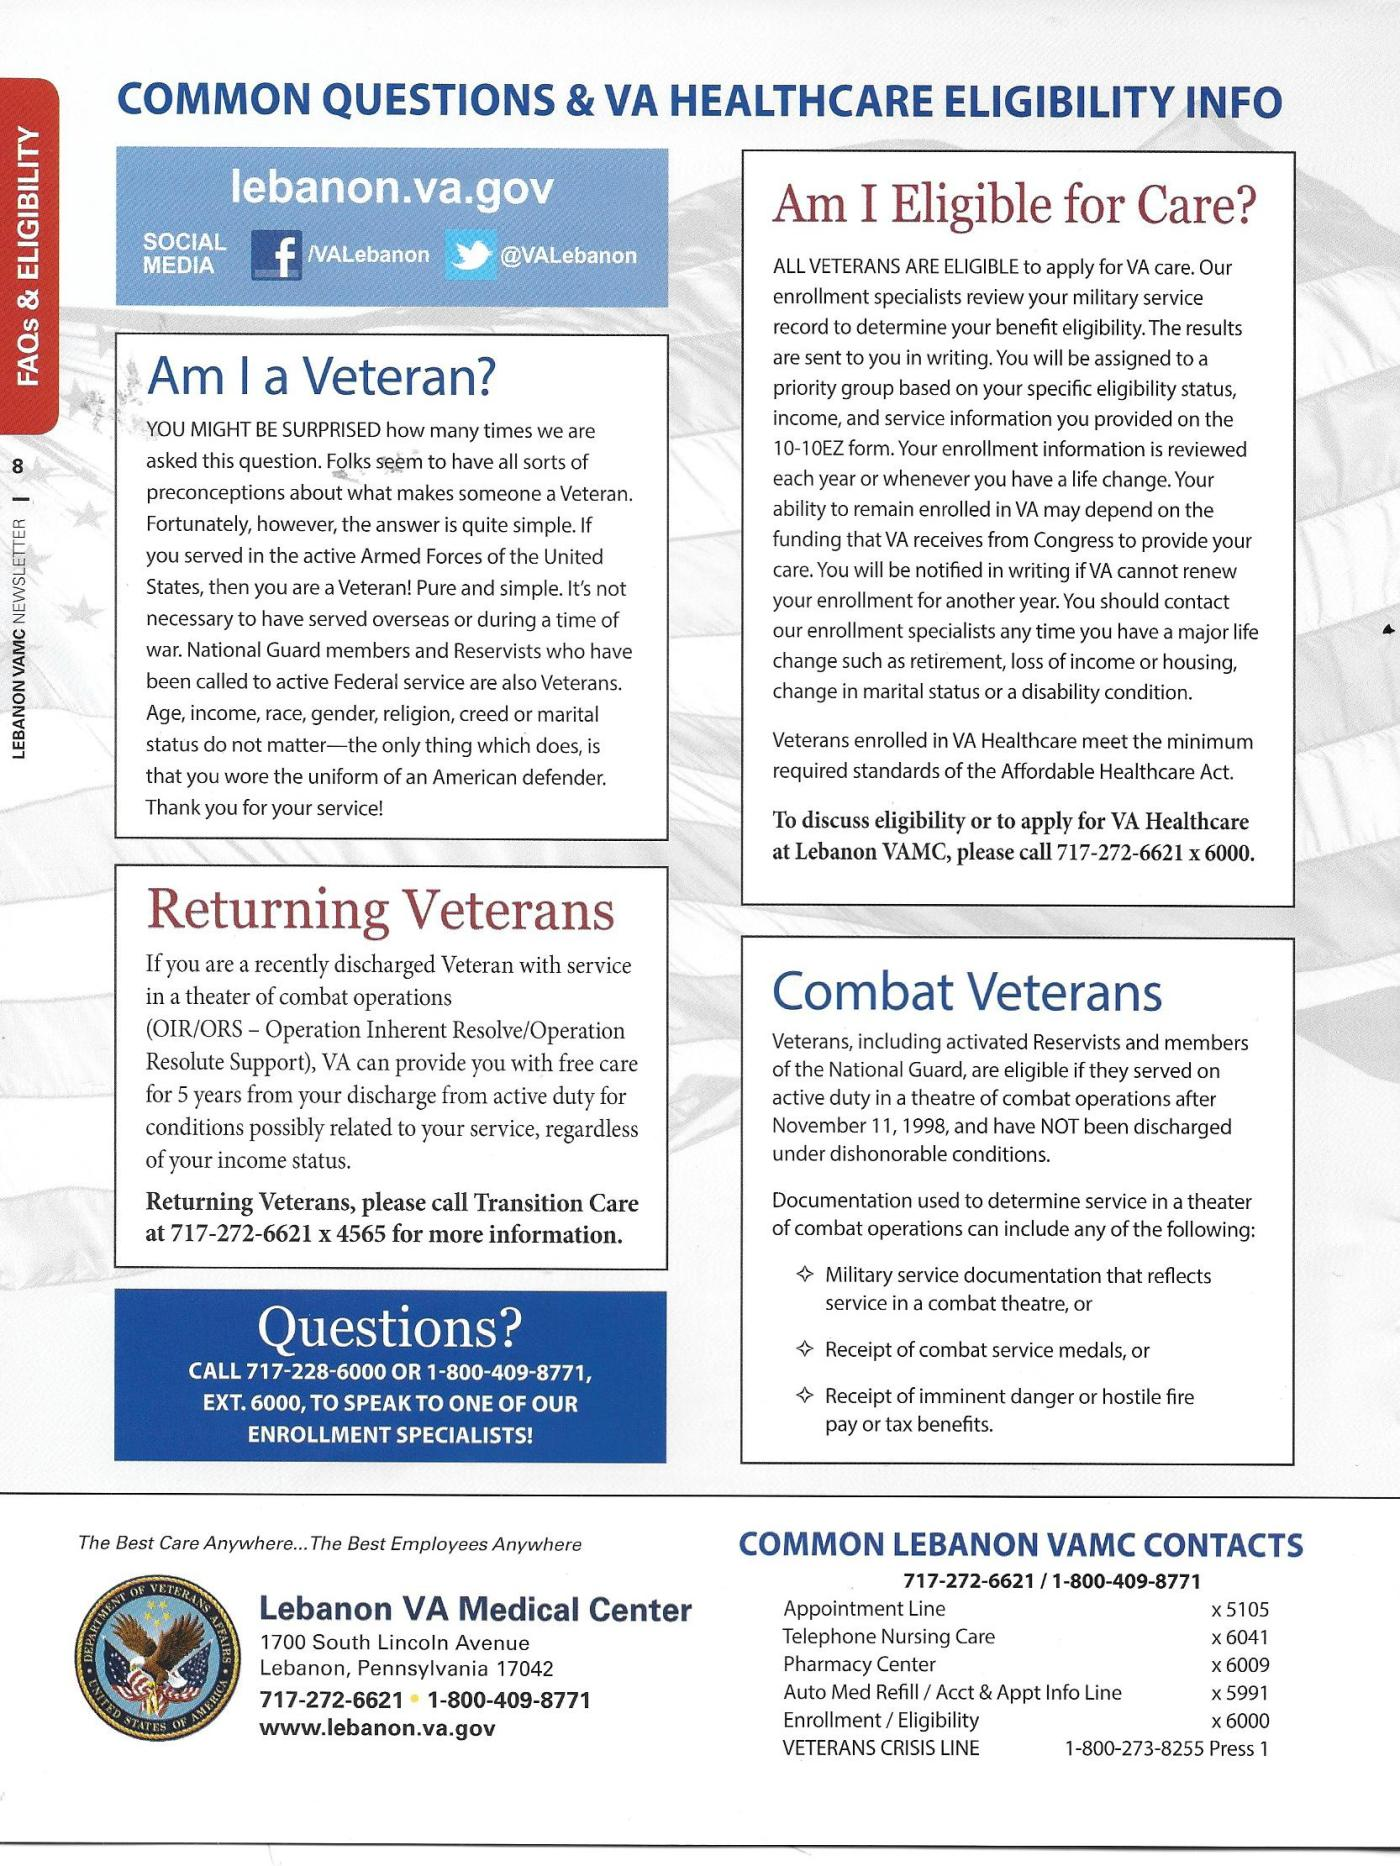 Here are some common questions (and answers) about VA